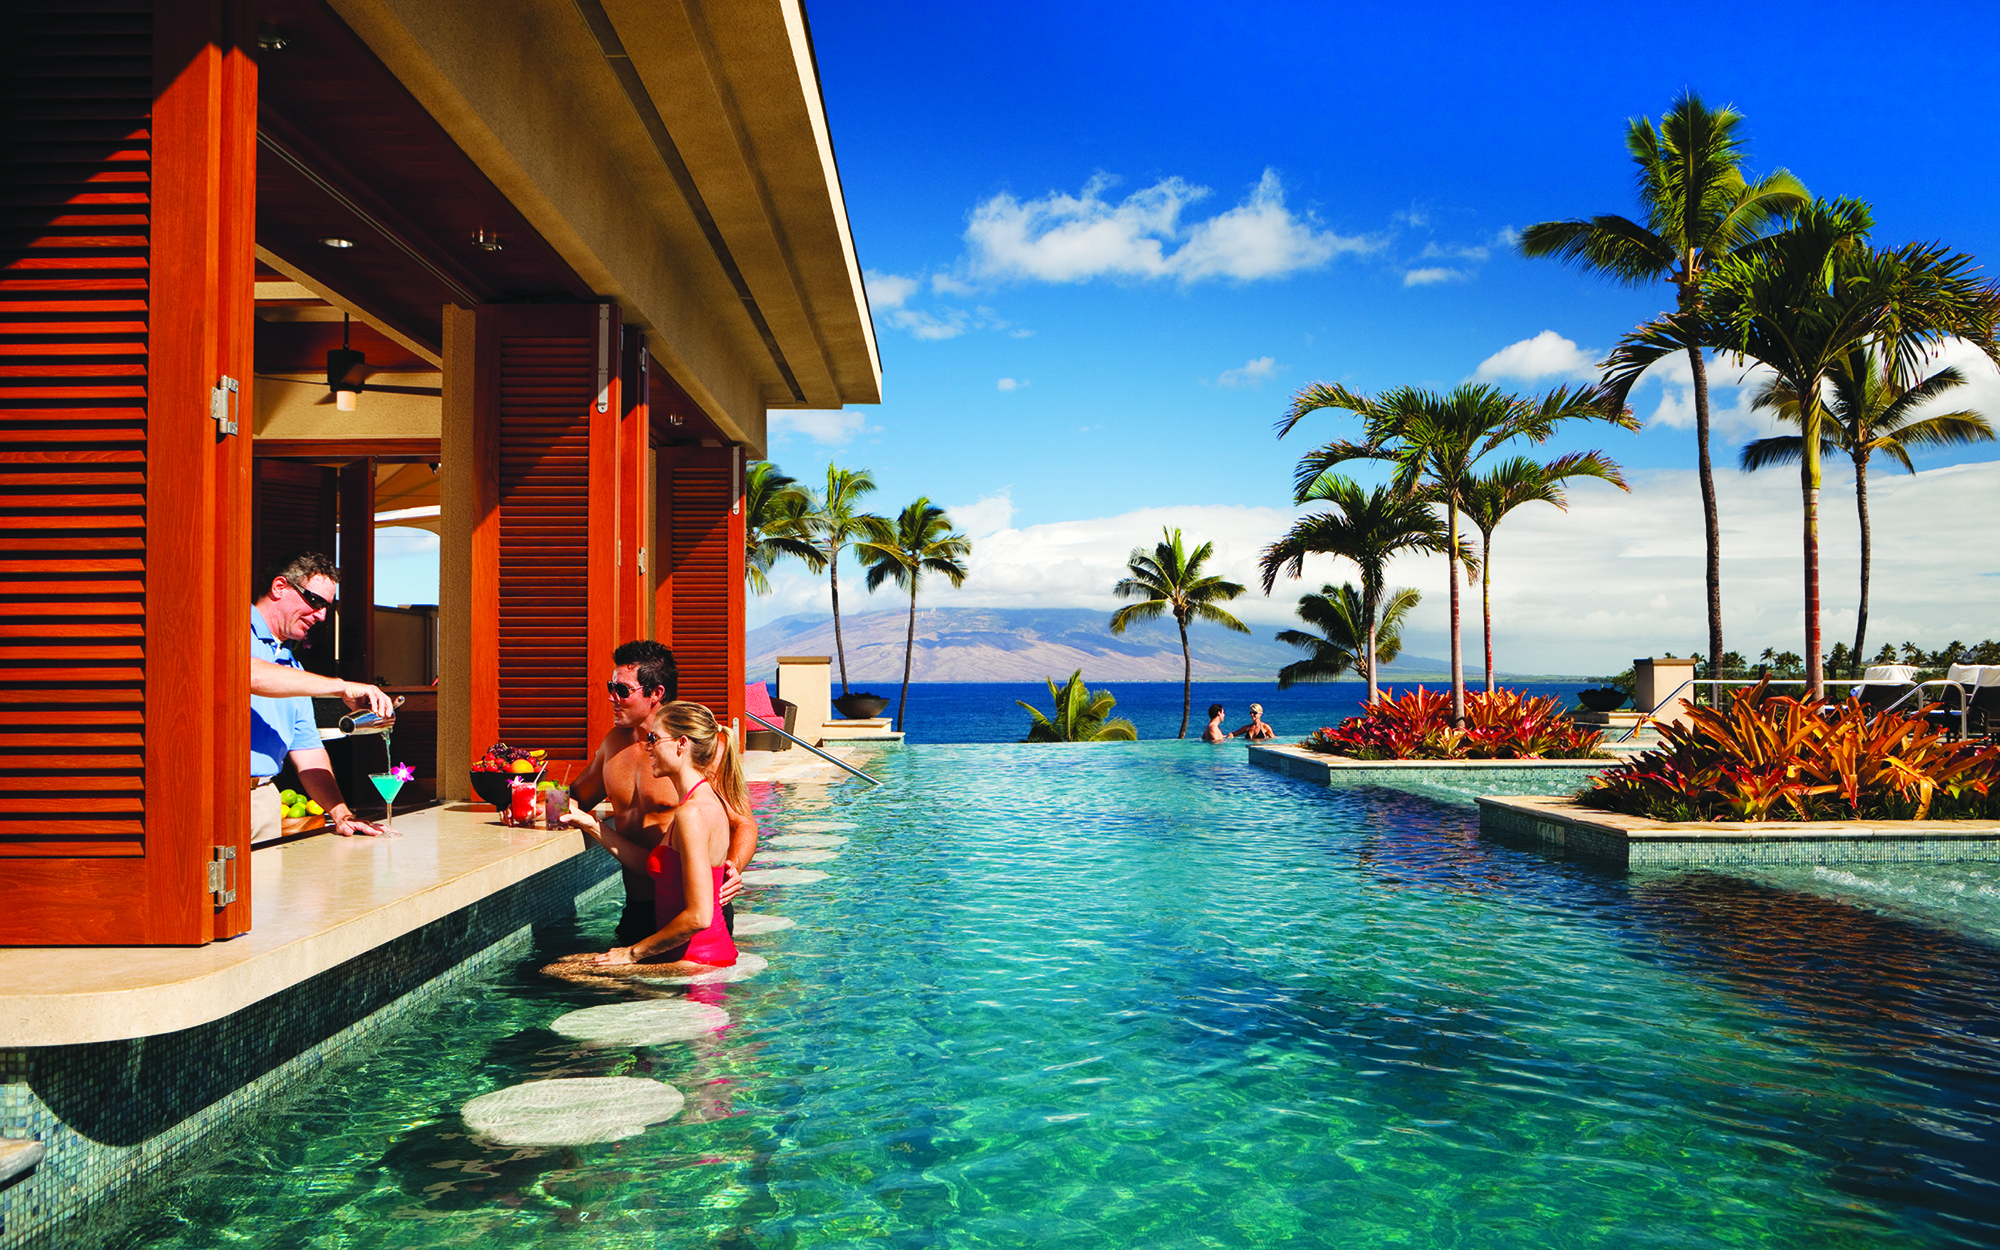 No. 12 Four Seasons Maui at Wailea: Hawaii